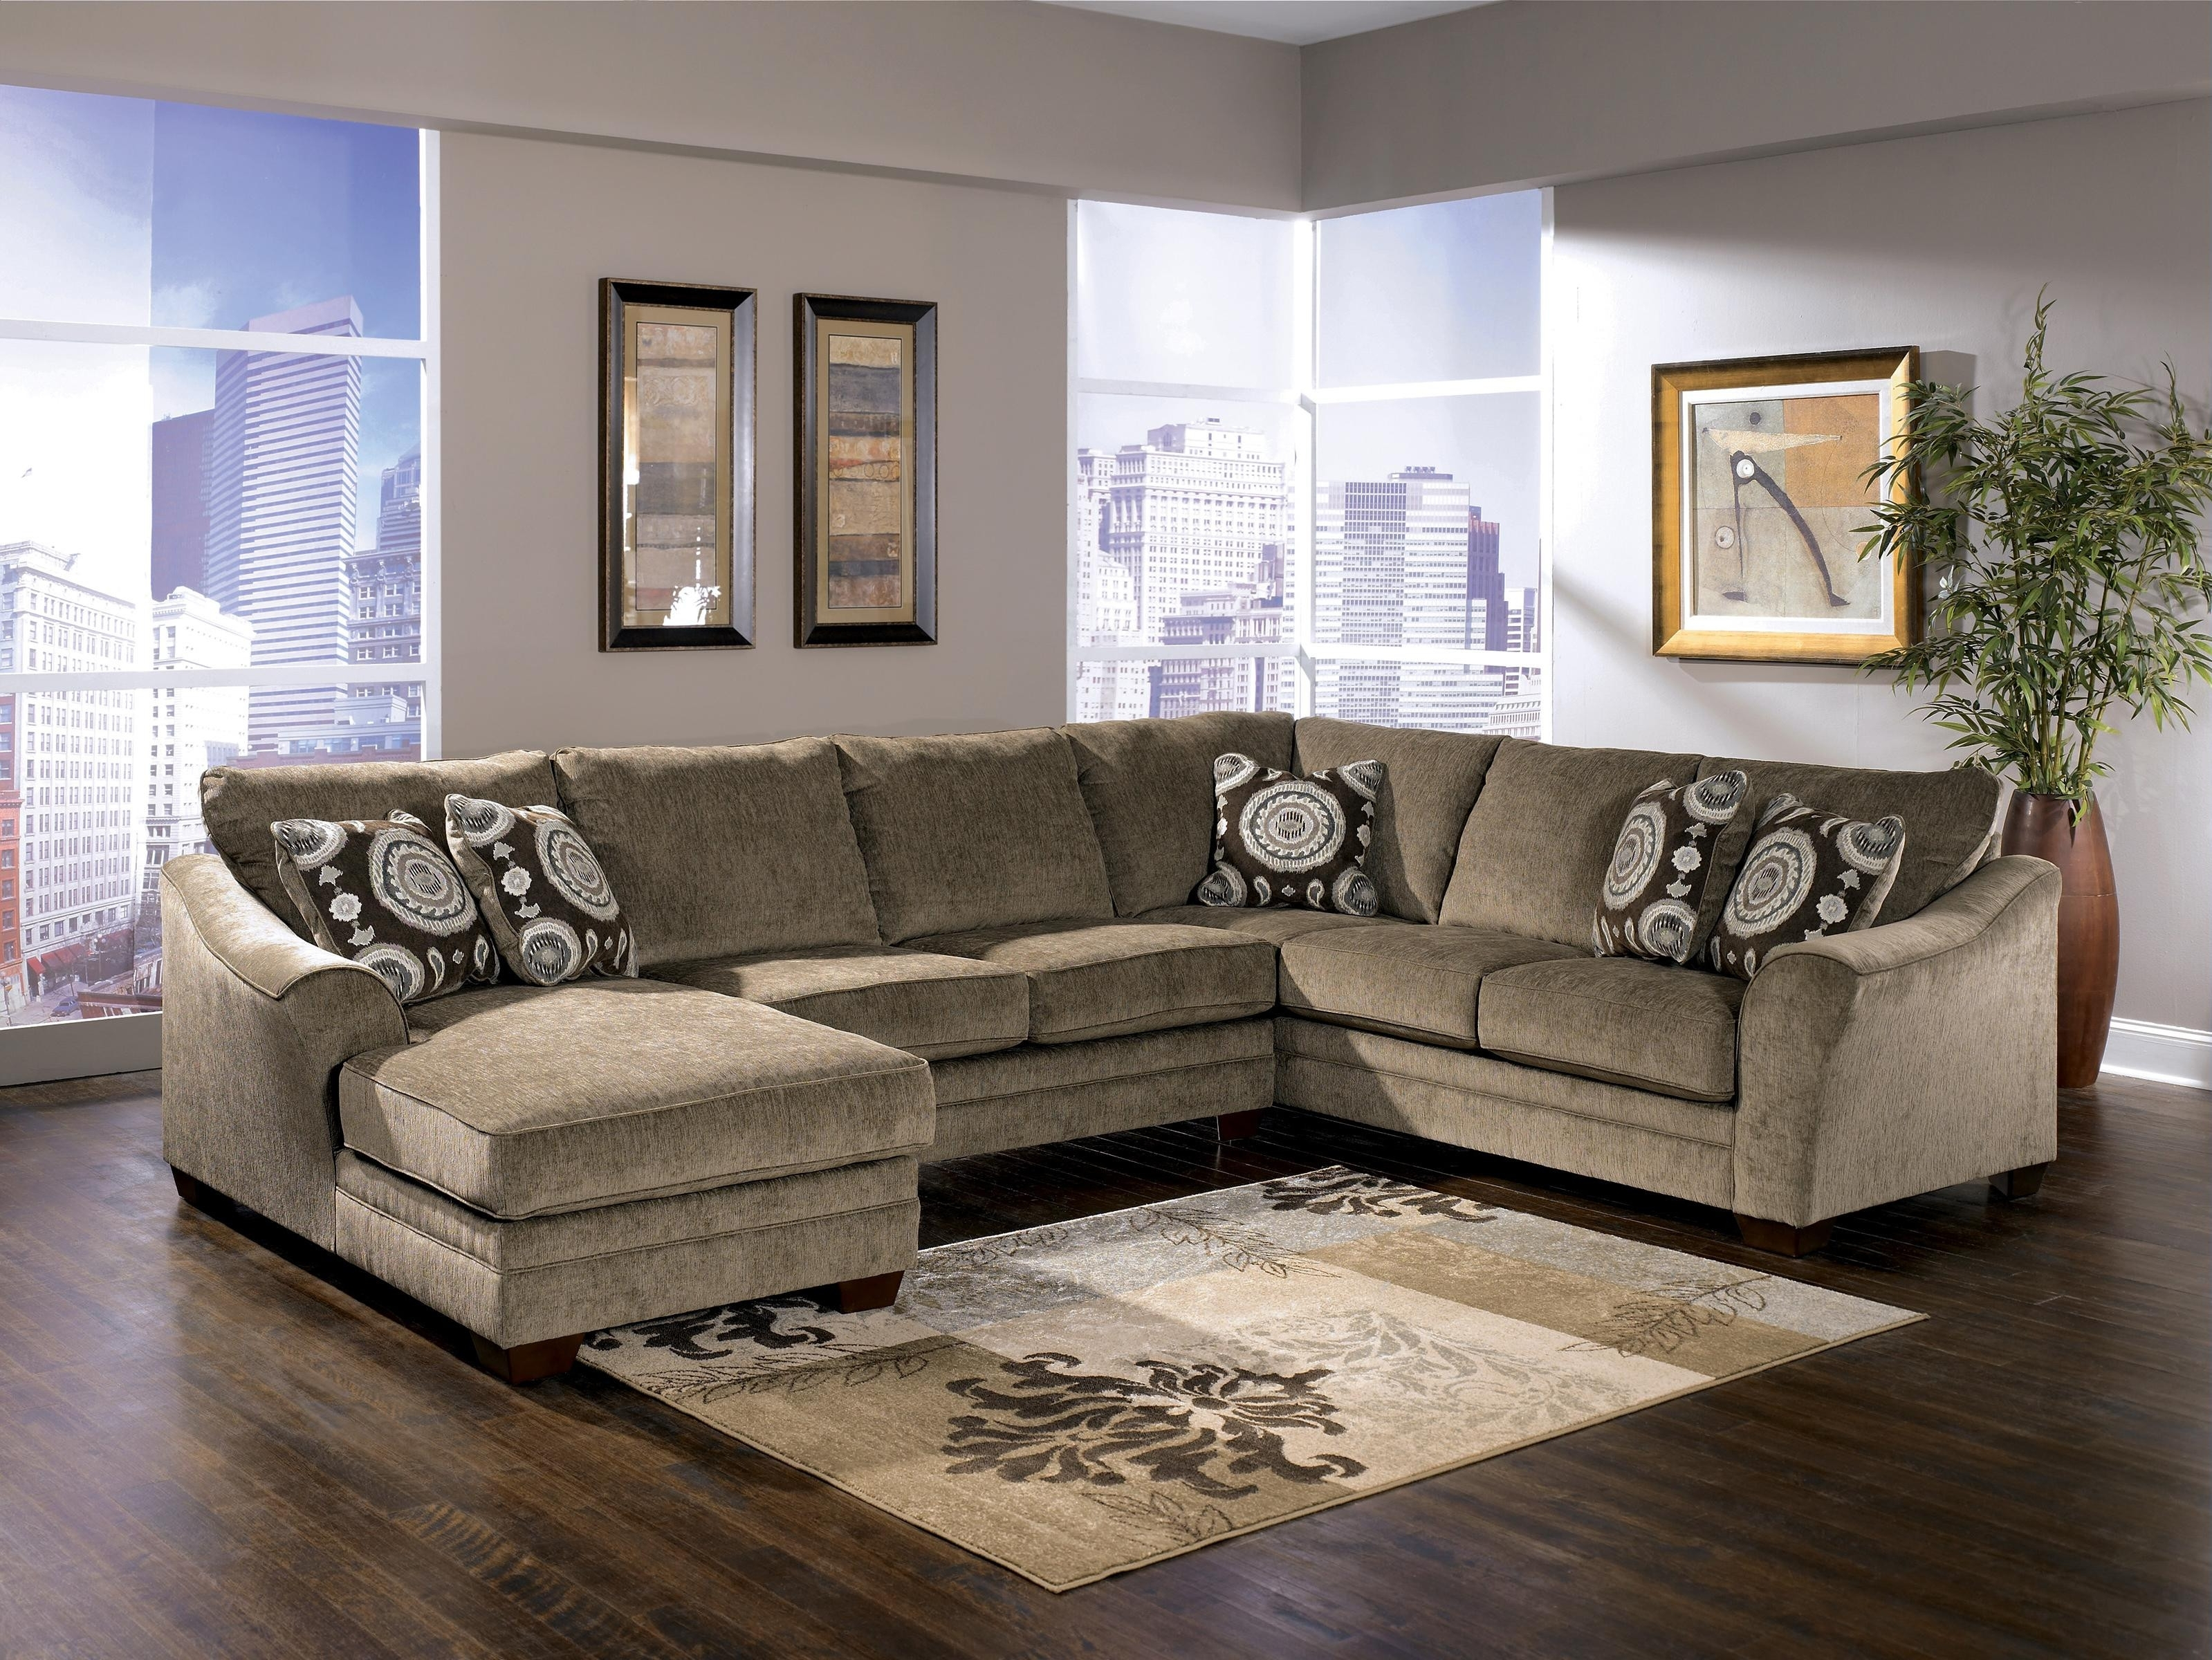 Ashley Furniture Wilmington Nc Best Of Signature Designashley in Wilmington Nc Sectional Sofas (Image 3 of 10)